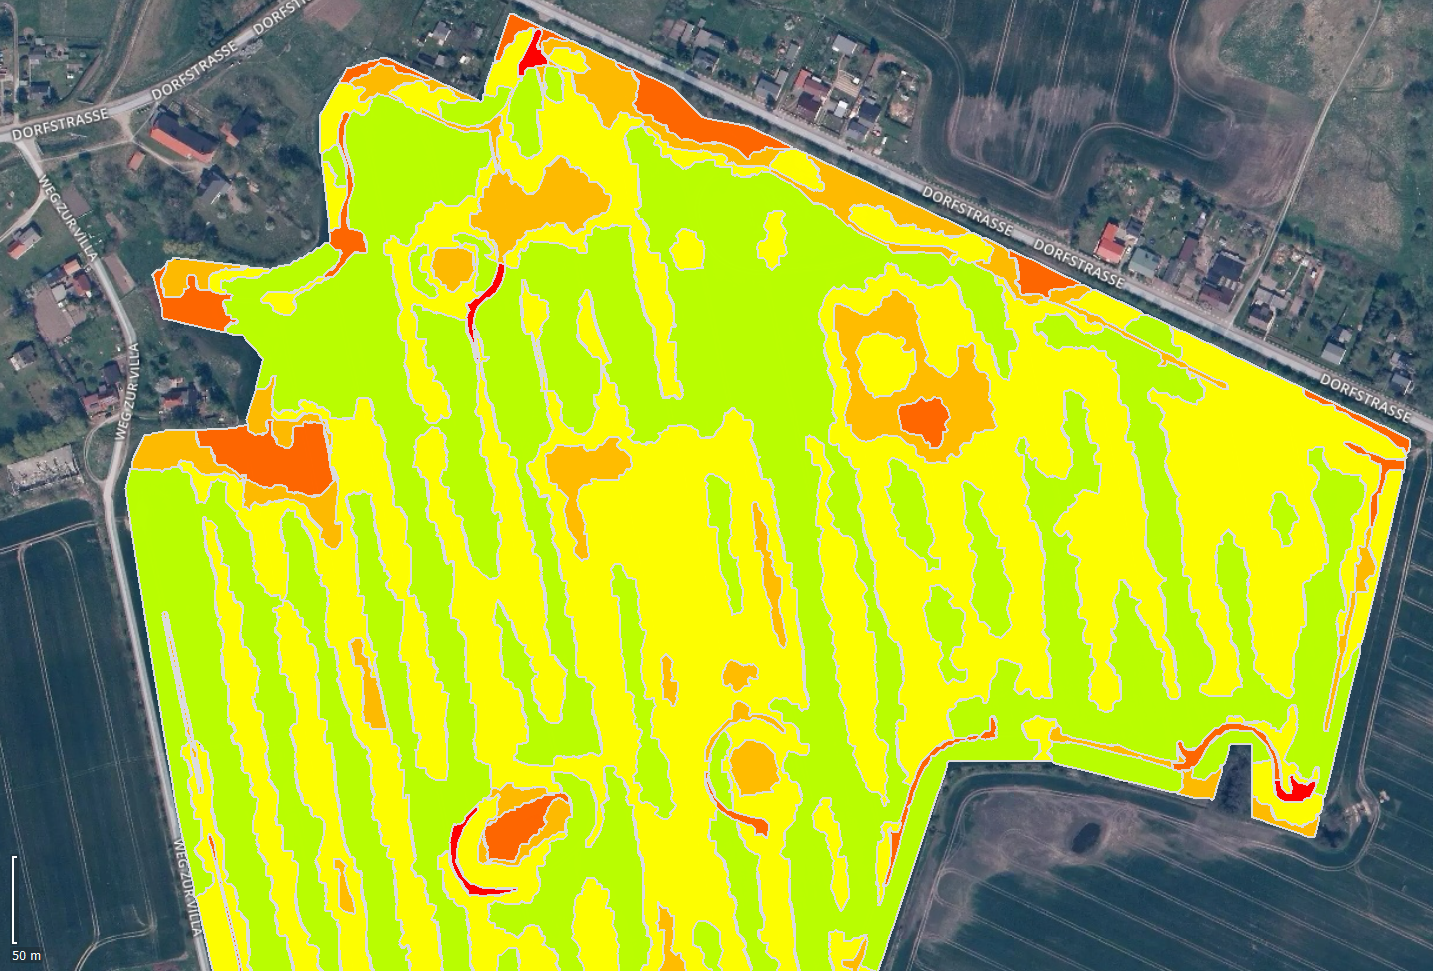 IMAGE OUTPUTS PIX4DFIELDS field boundaries